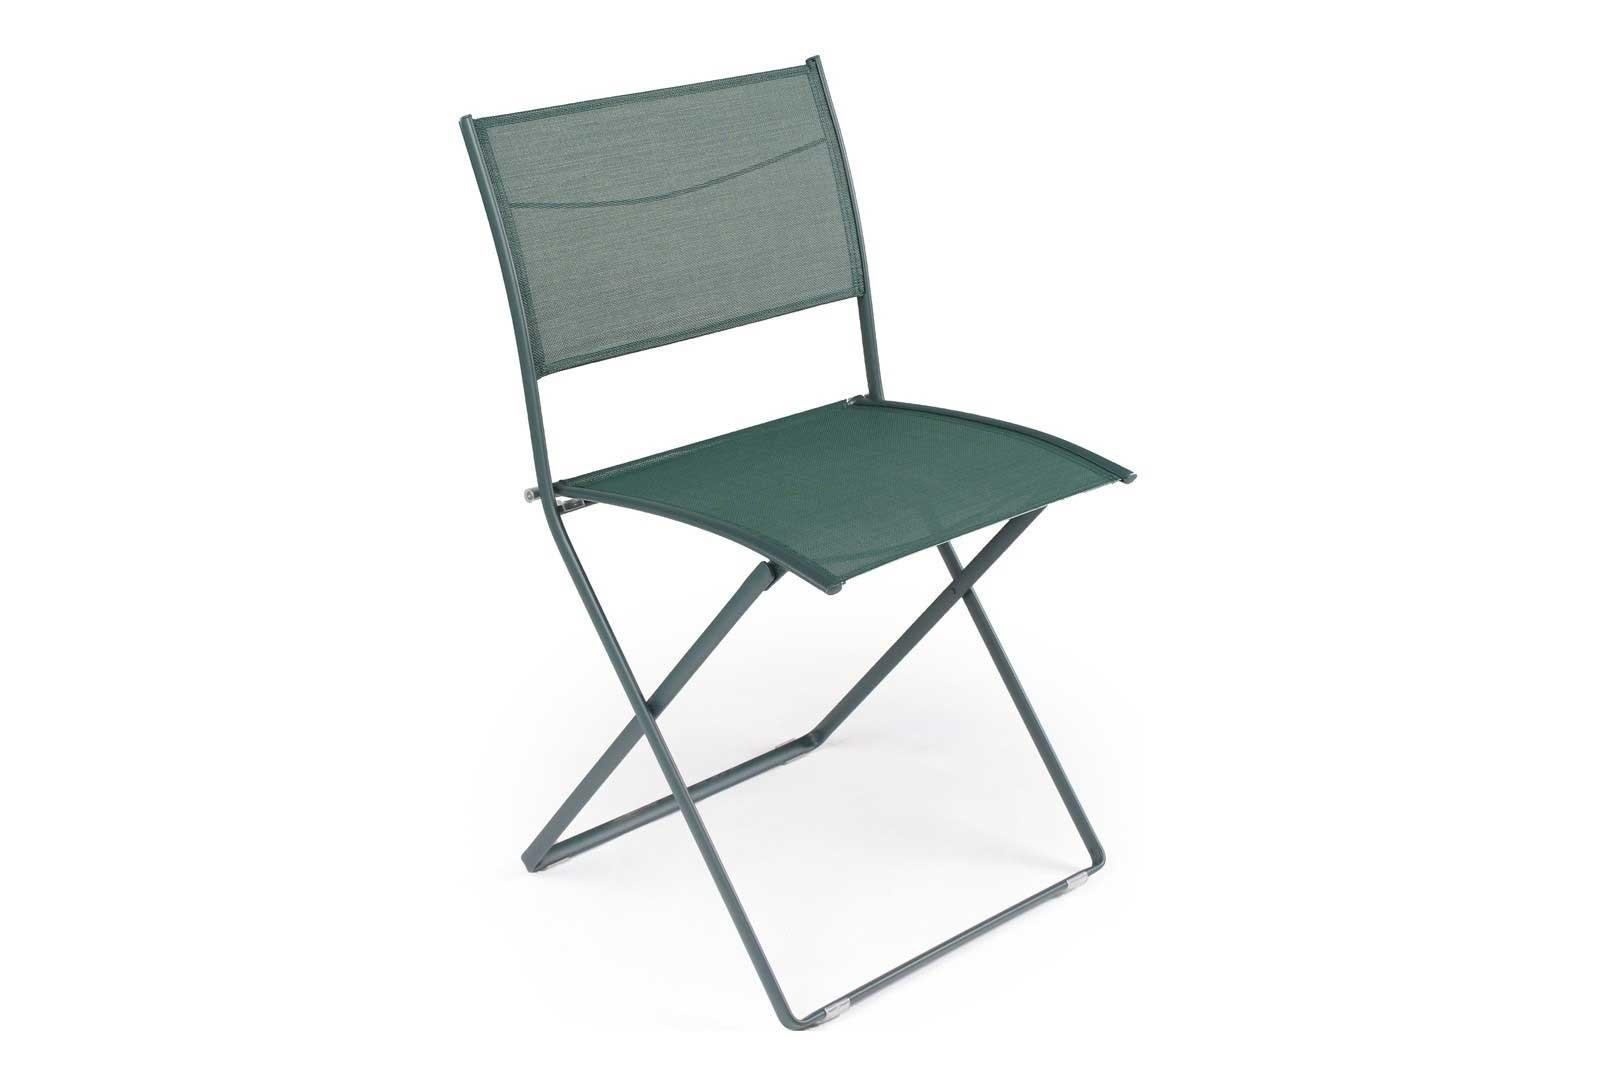 Chairs Every Purpose Ross Stores Recalls Folding